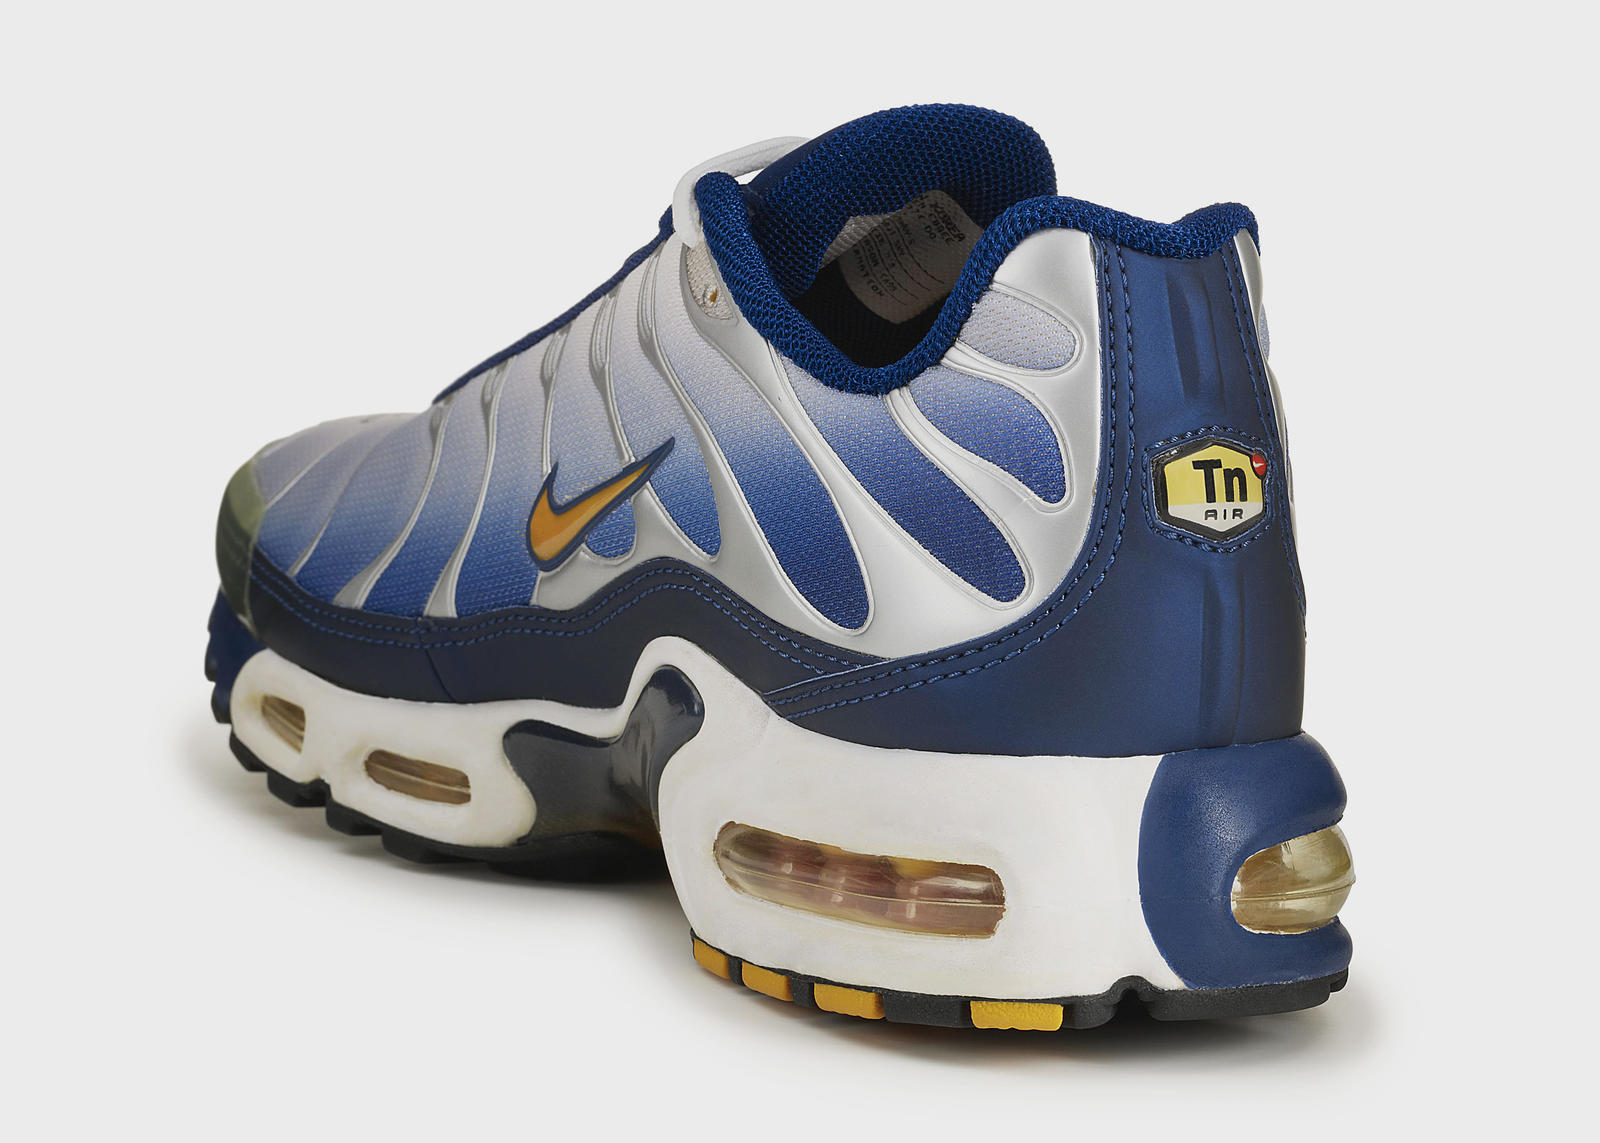 98bda10e241 The Untold Story of the Nike Air Max Plus - Nike News